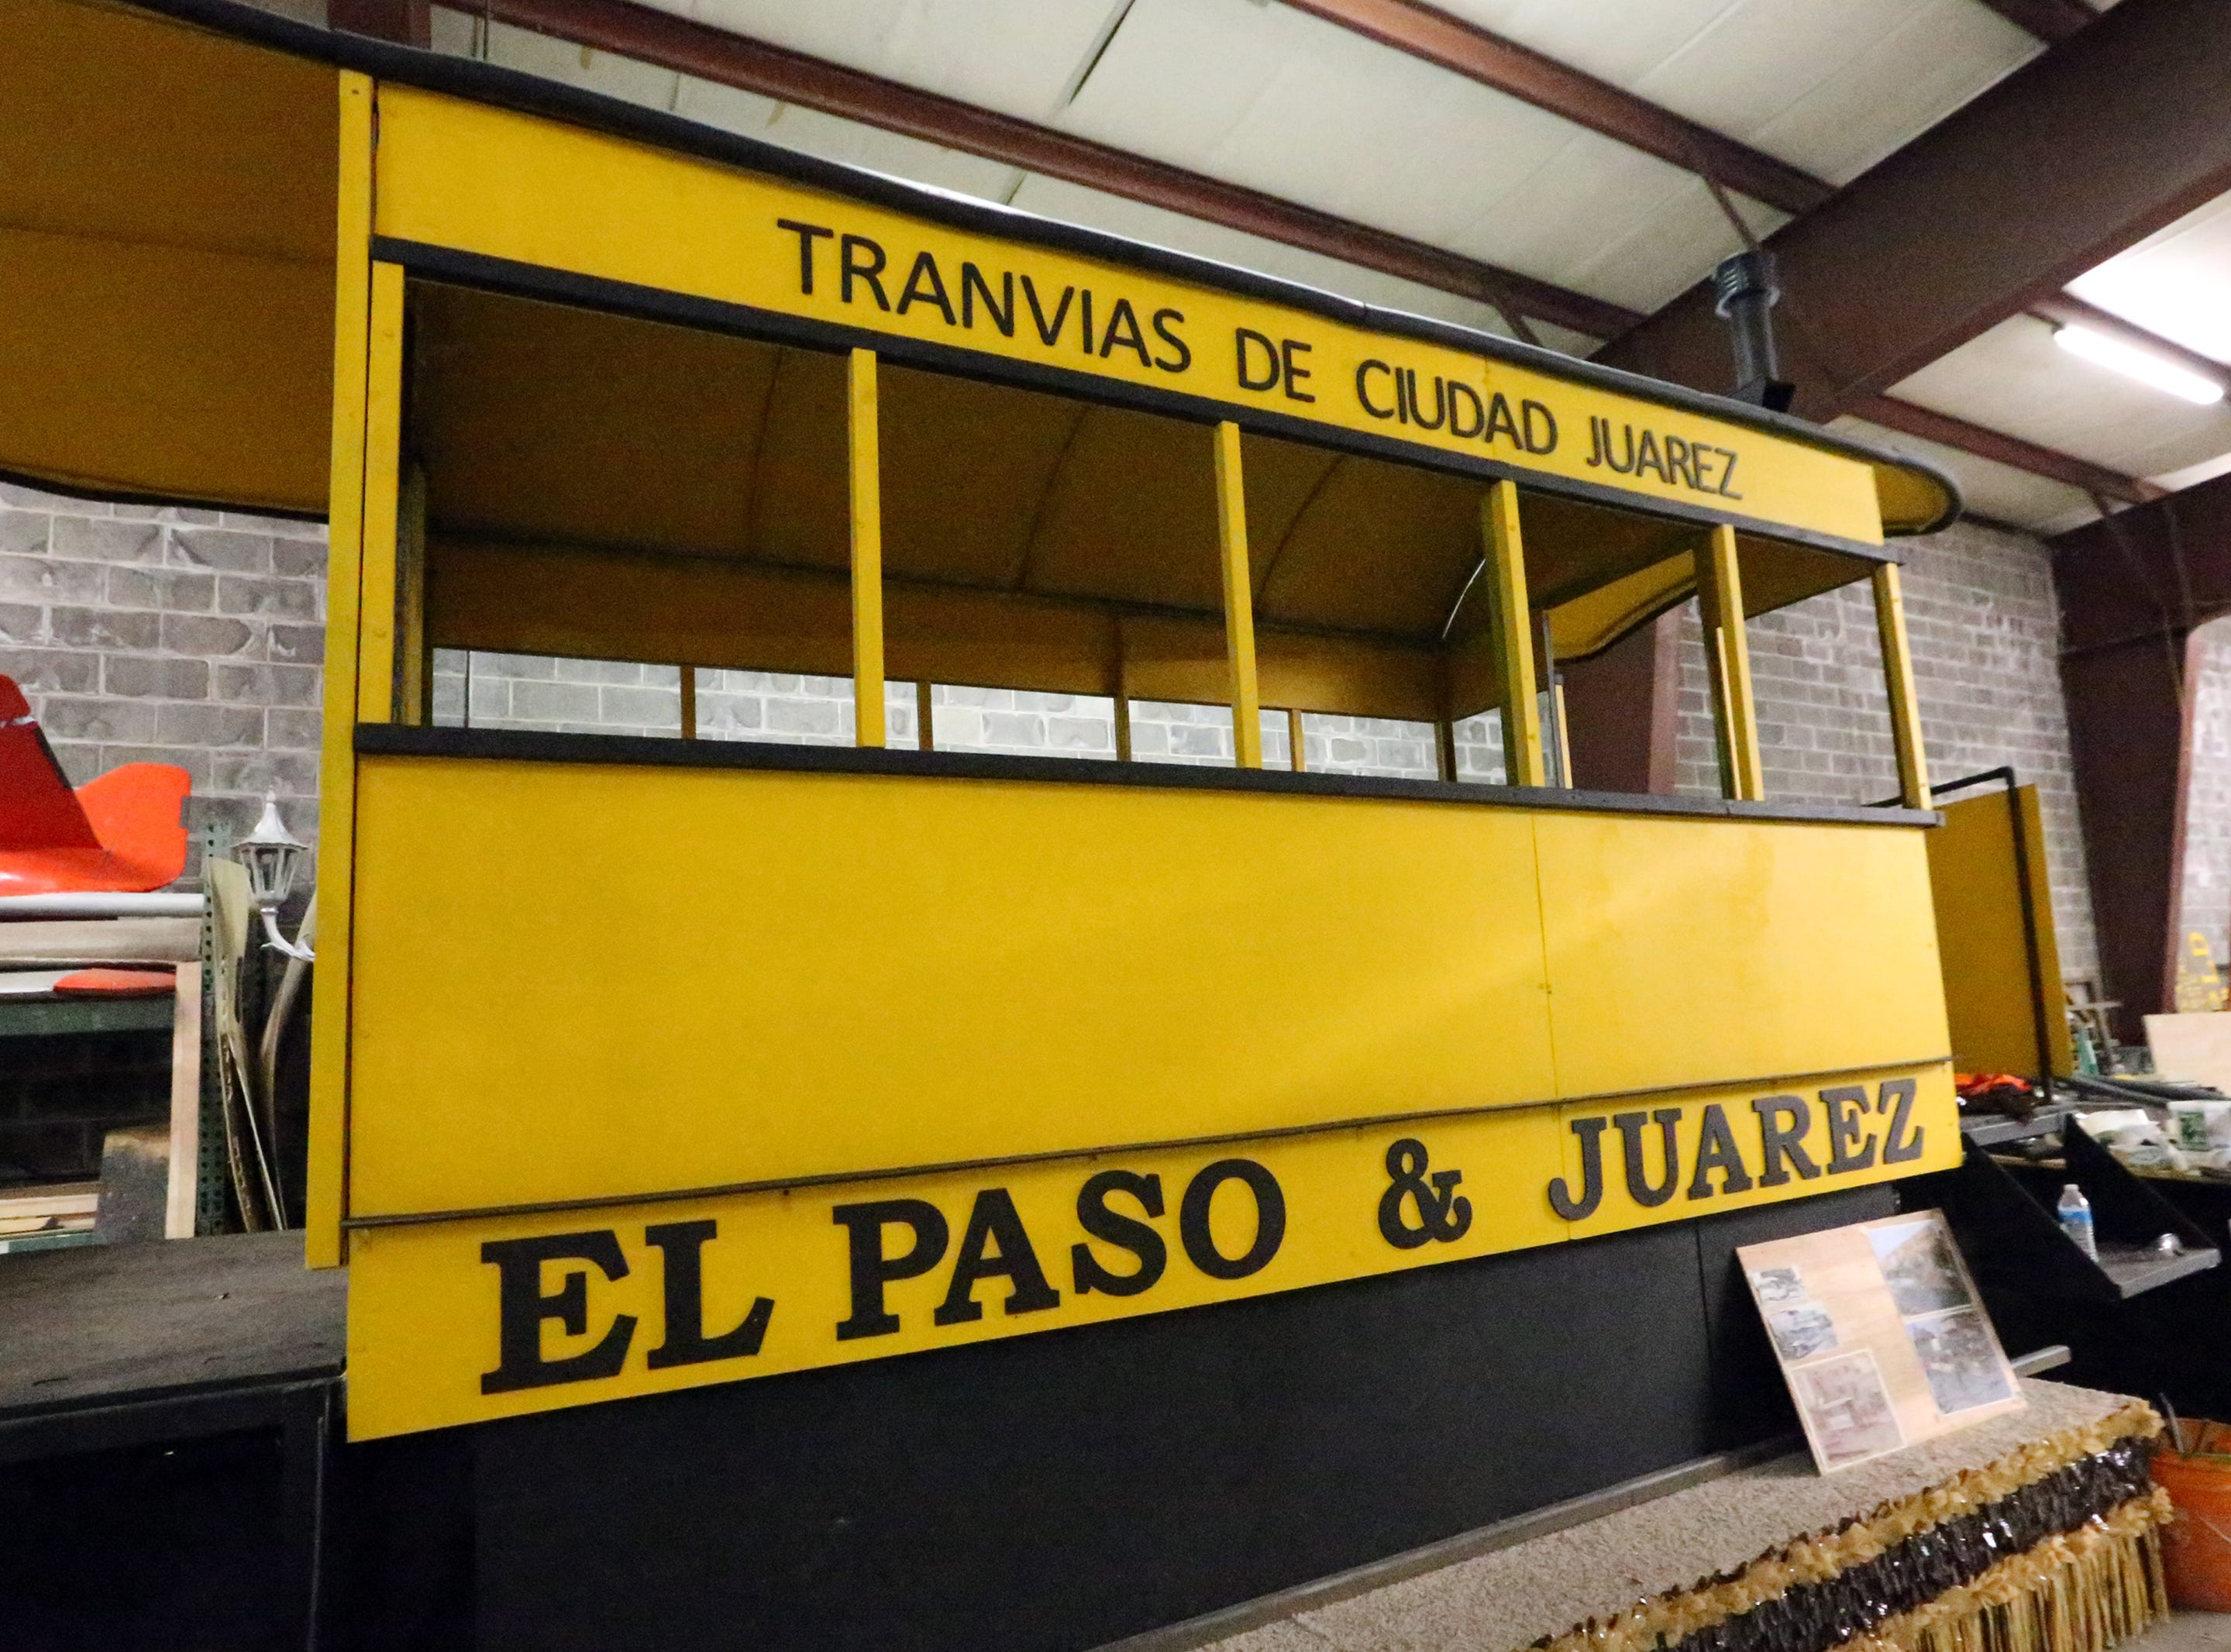 A faithful replica of a mule-drawn trolly car that traveled between El Paso and Juarez is being finished. The float is sponsored by the El Paso Electric Company.